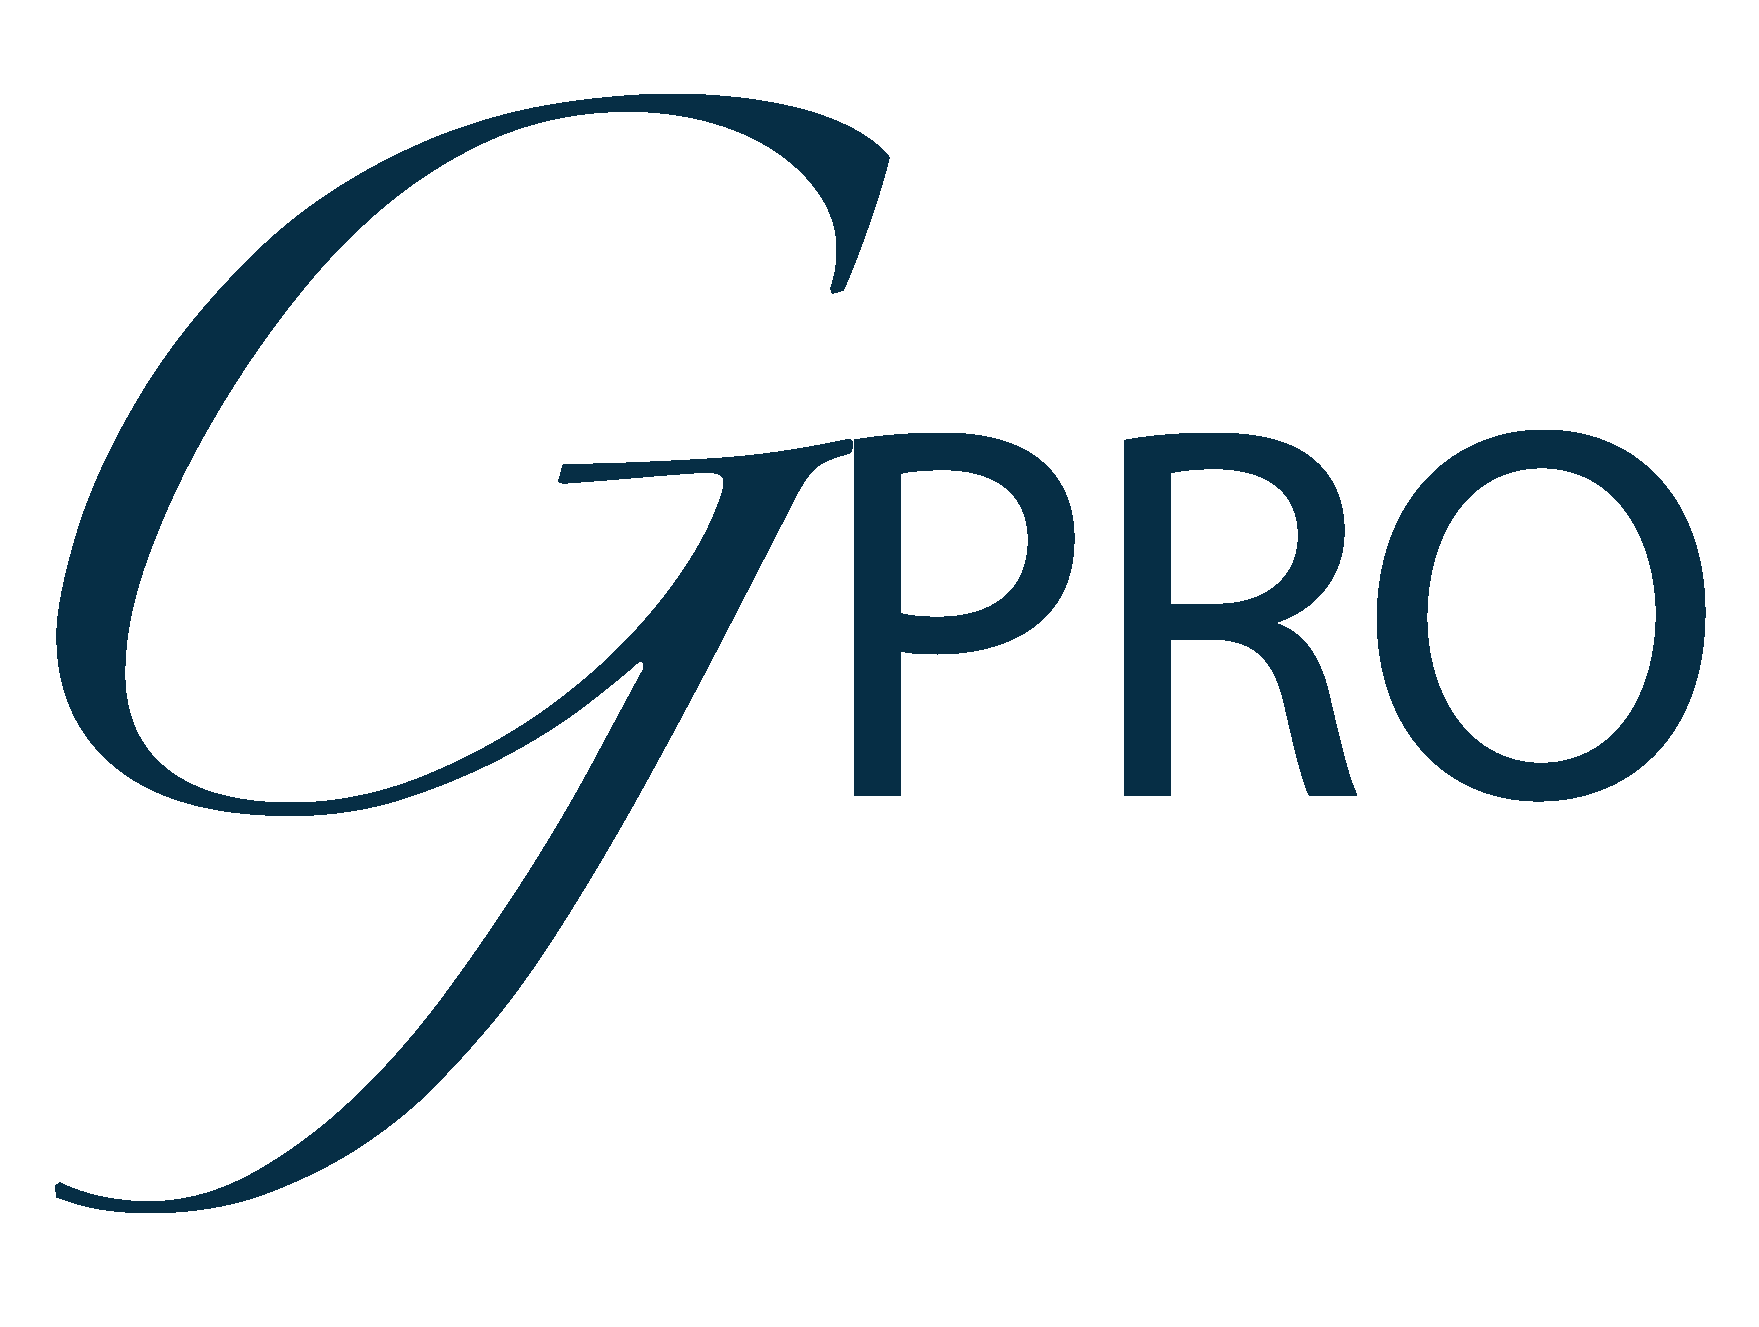 Gpro Digital Media (Gaston Productions)